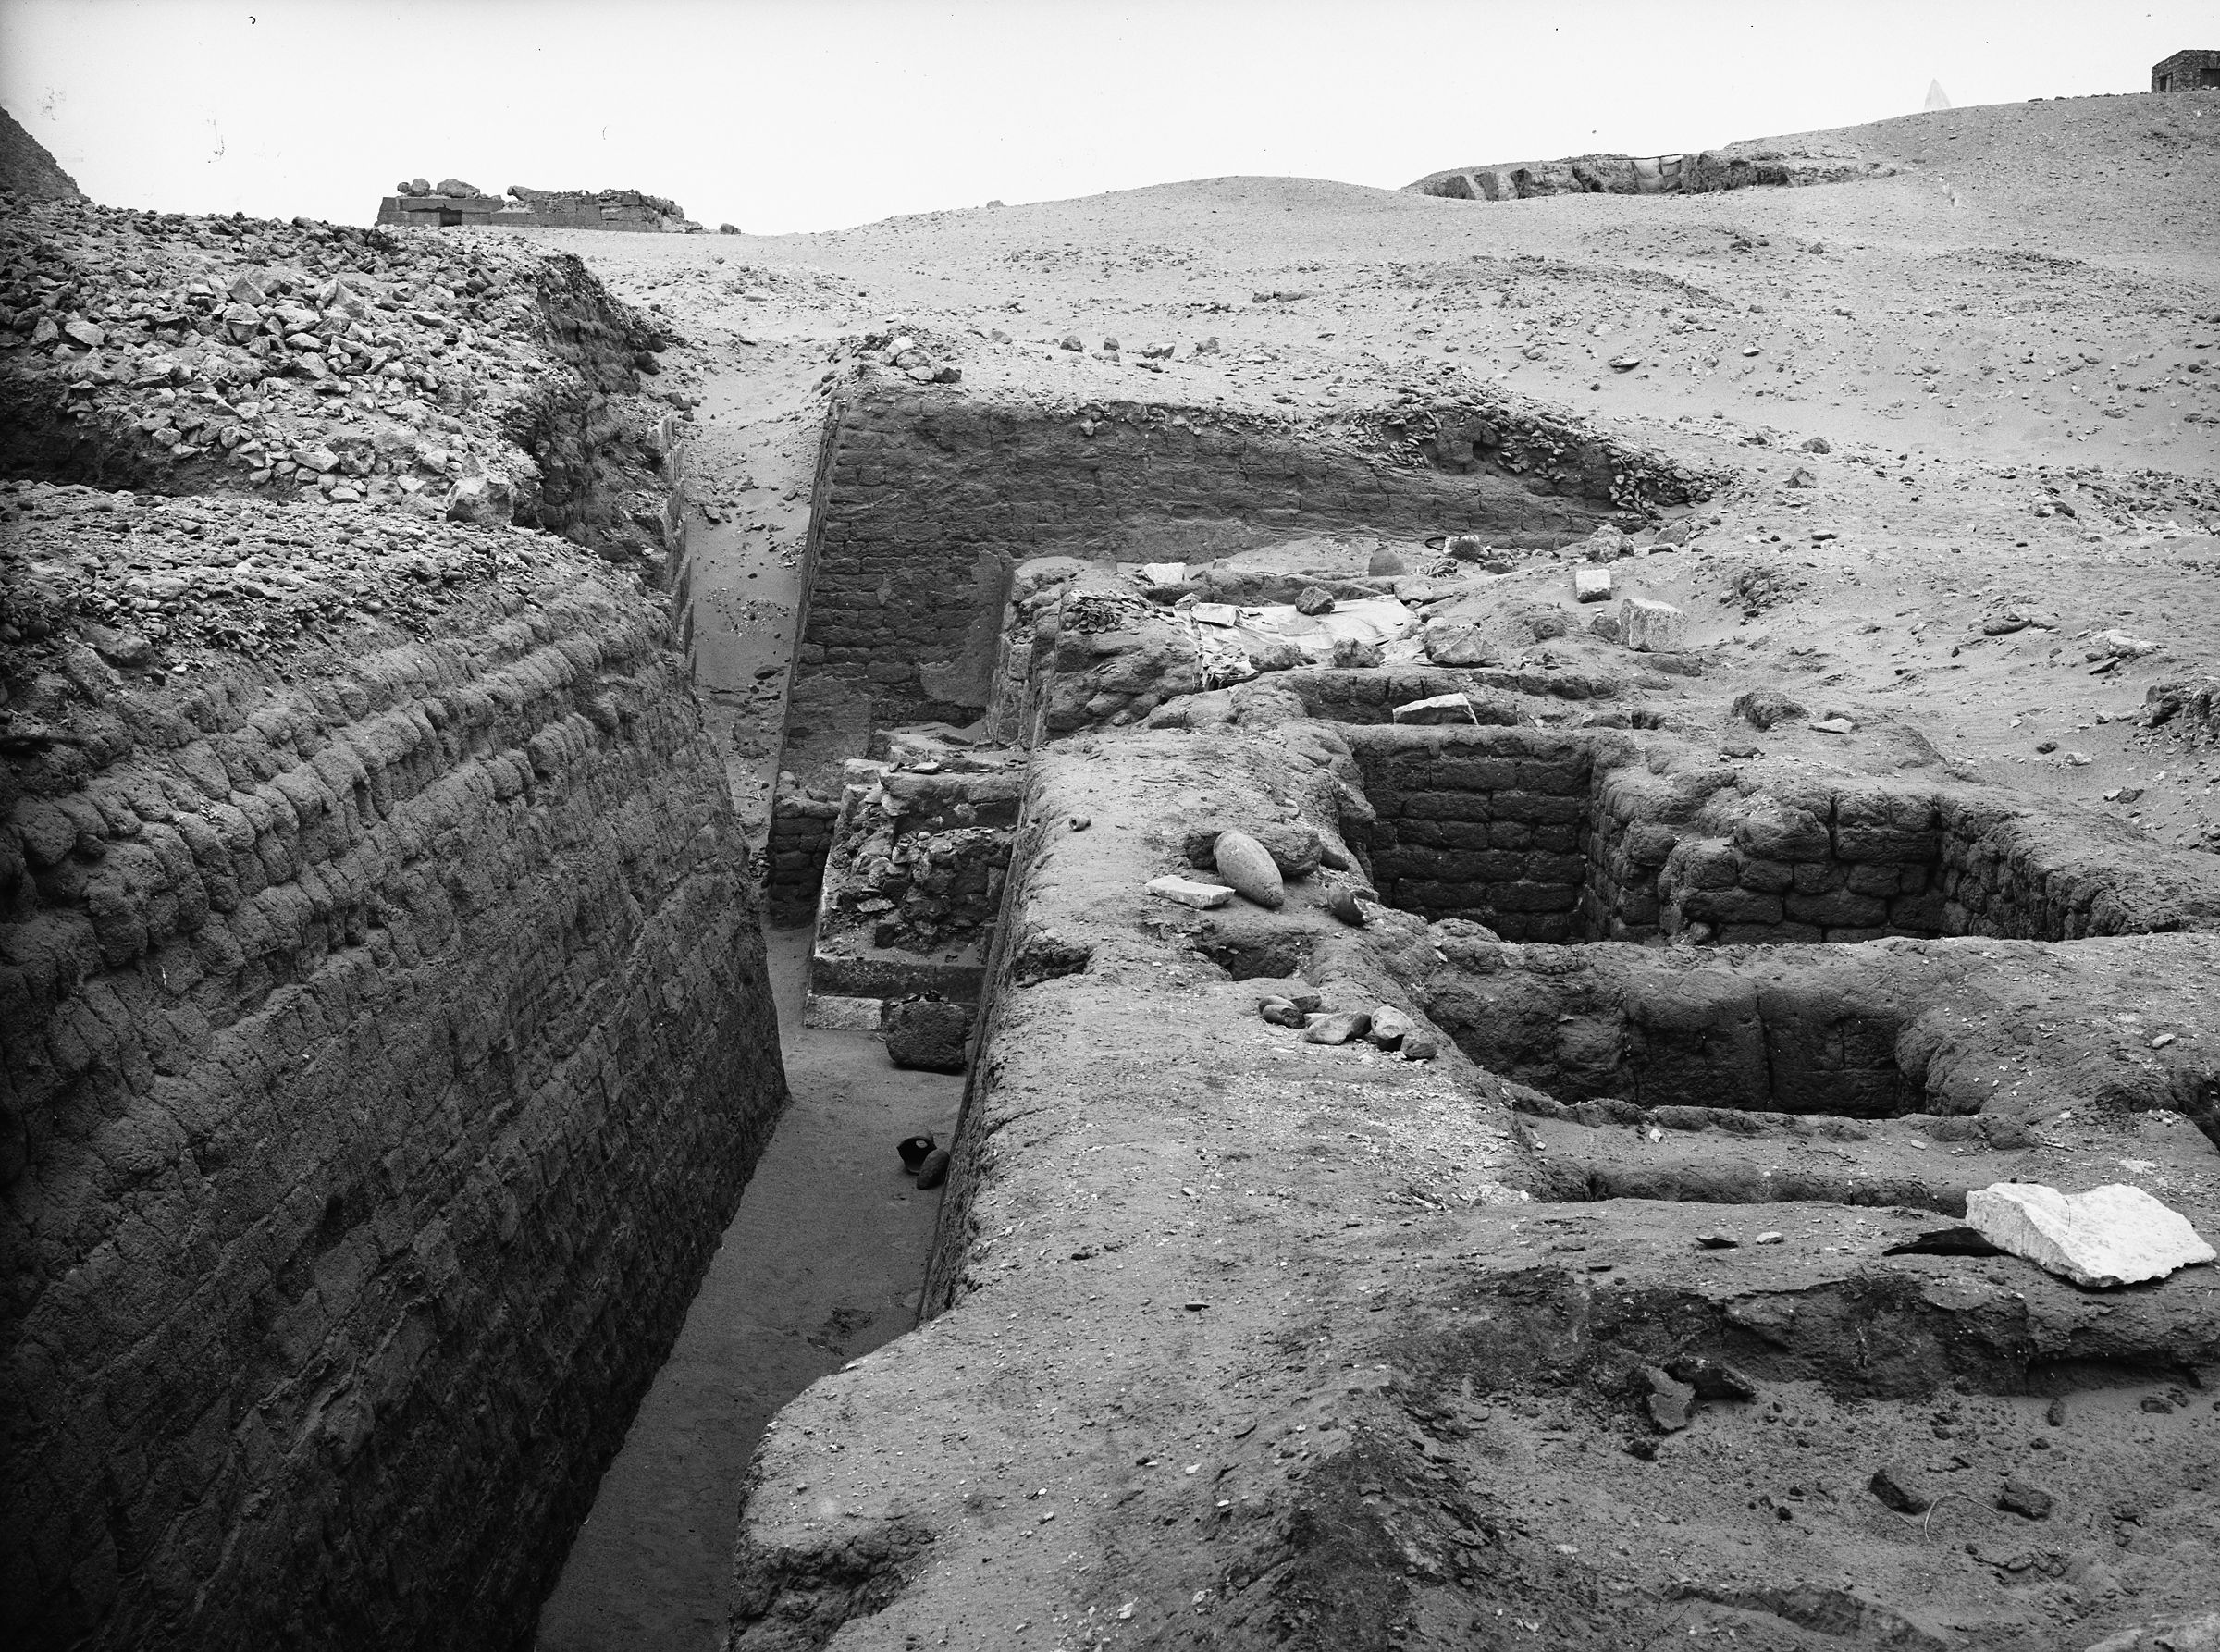 Western Cemetery: Site: Giza; View: G 1412, G 1452+1453, G 1407, G 1457